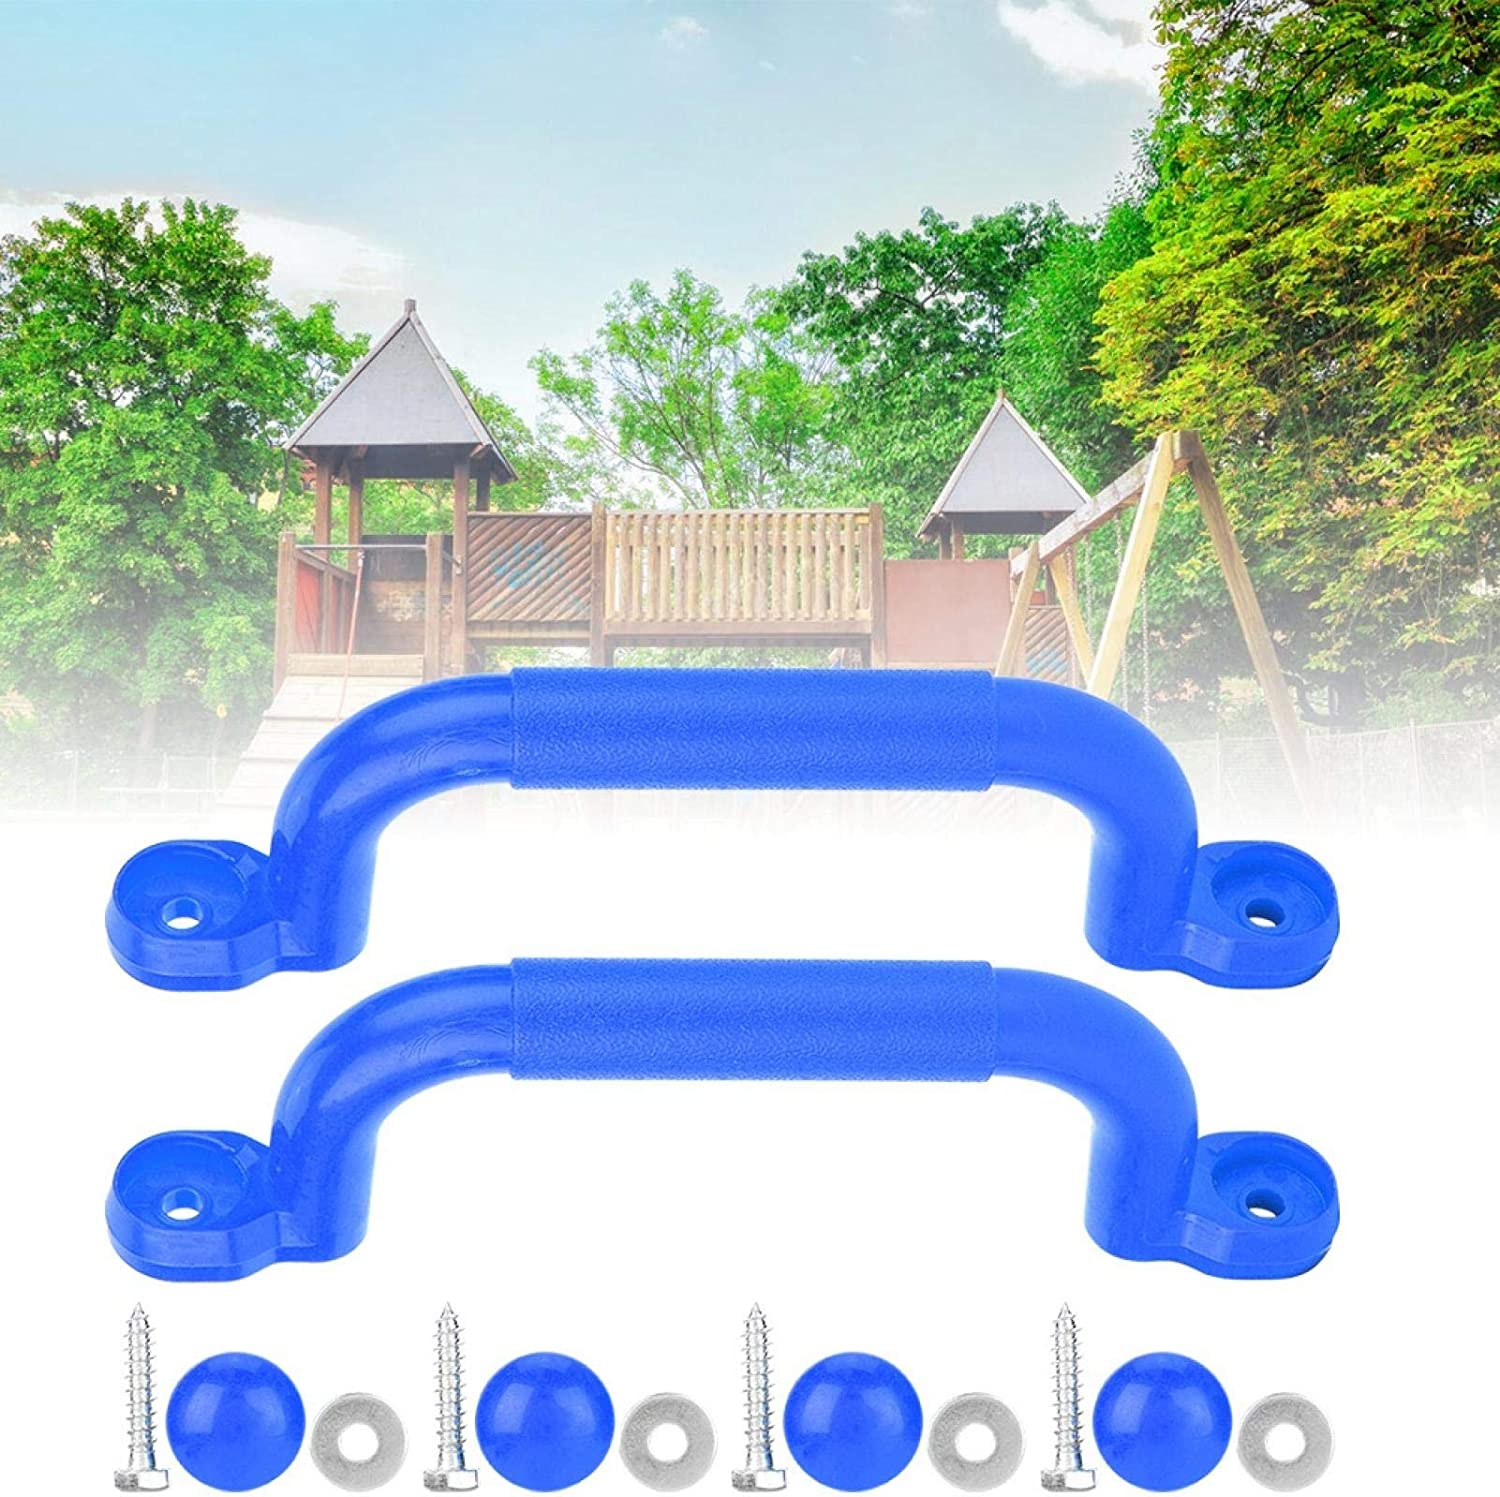 fegayu Non-Slip Safe Sturdy Playground Handle With Finger Grips Plastic Plastic Playground Handle For Climbing Frame /& Play House